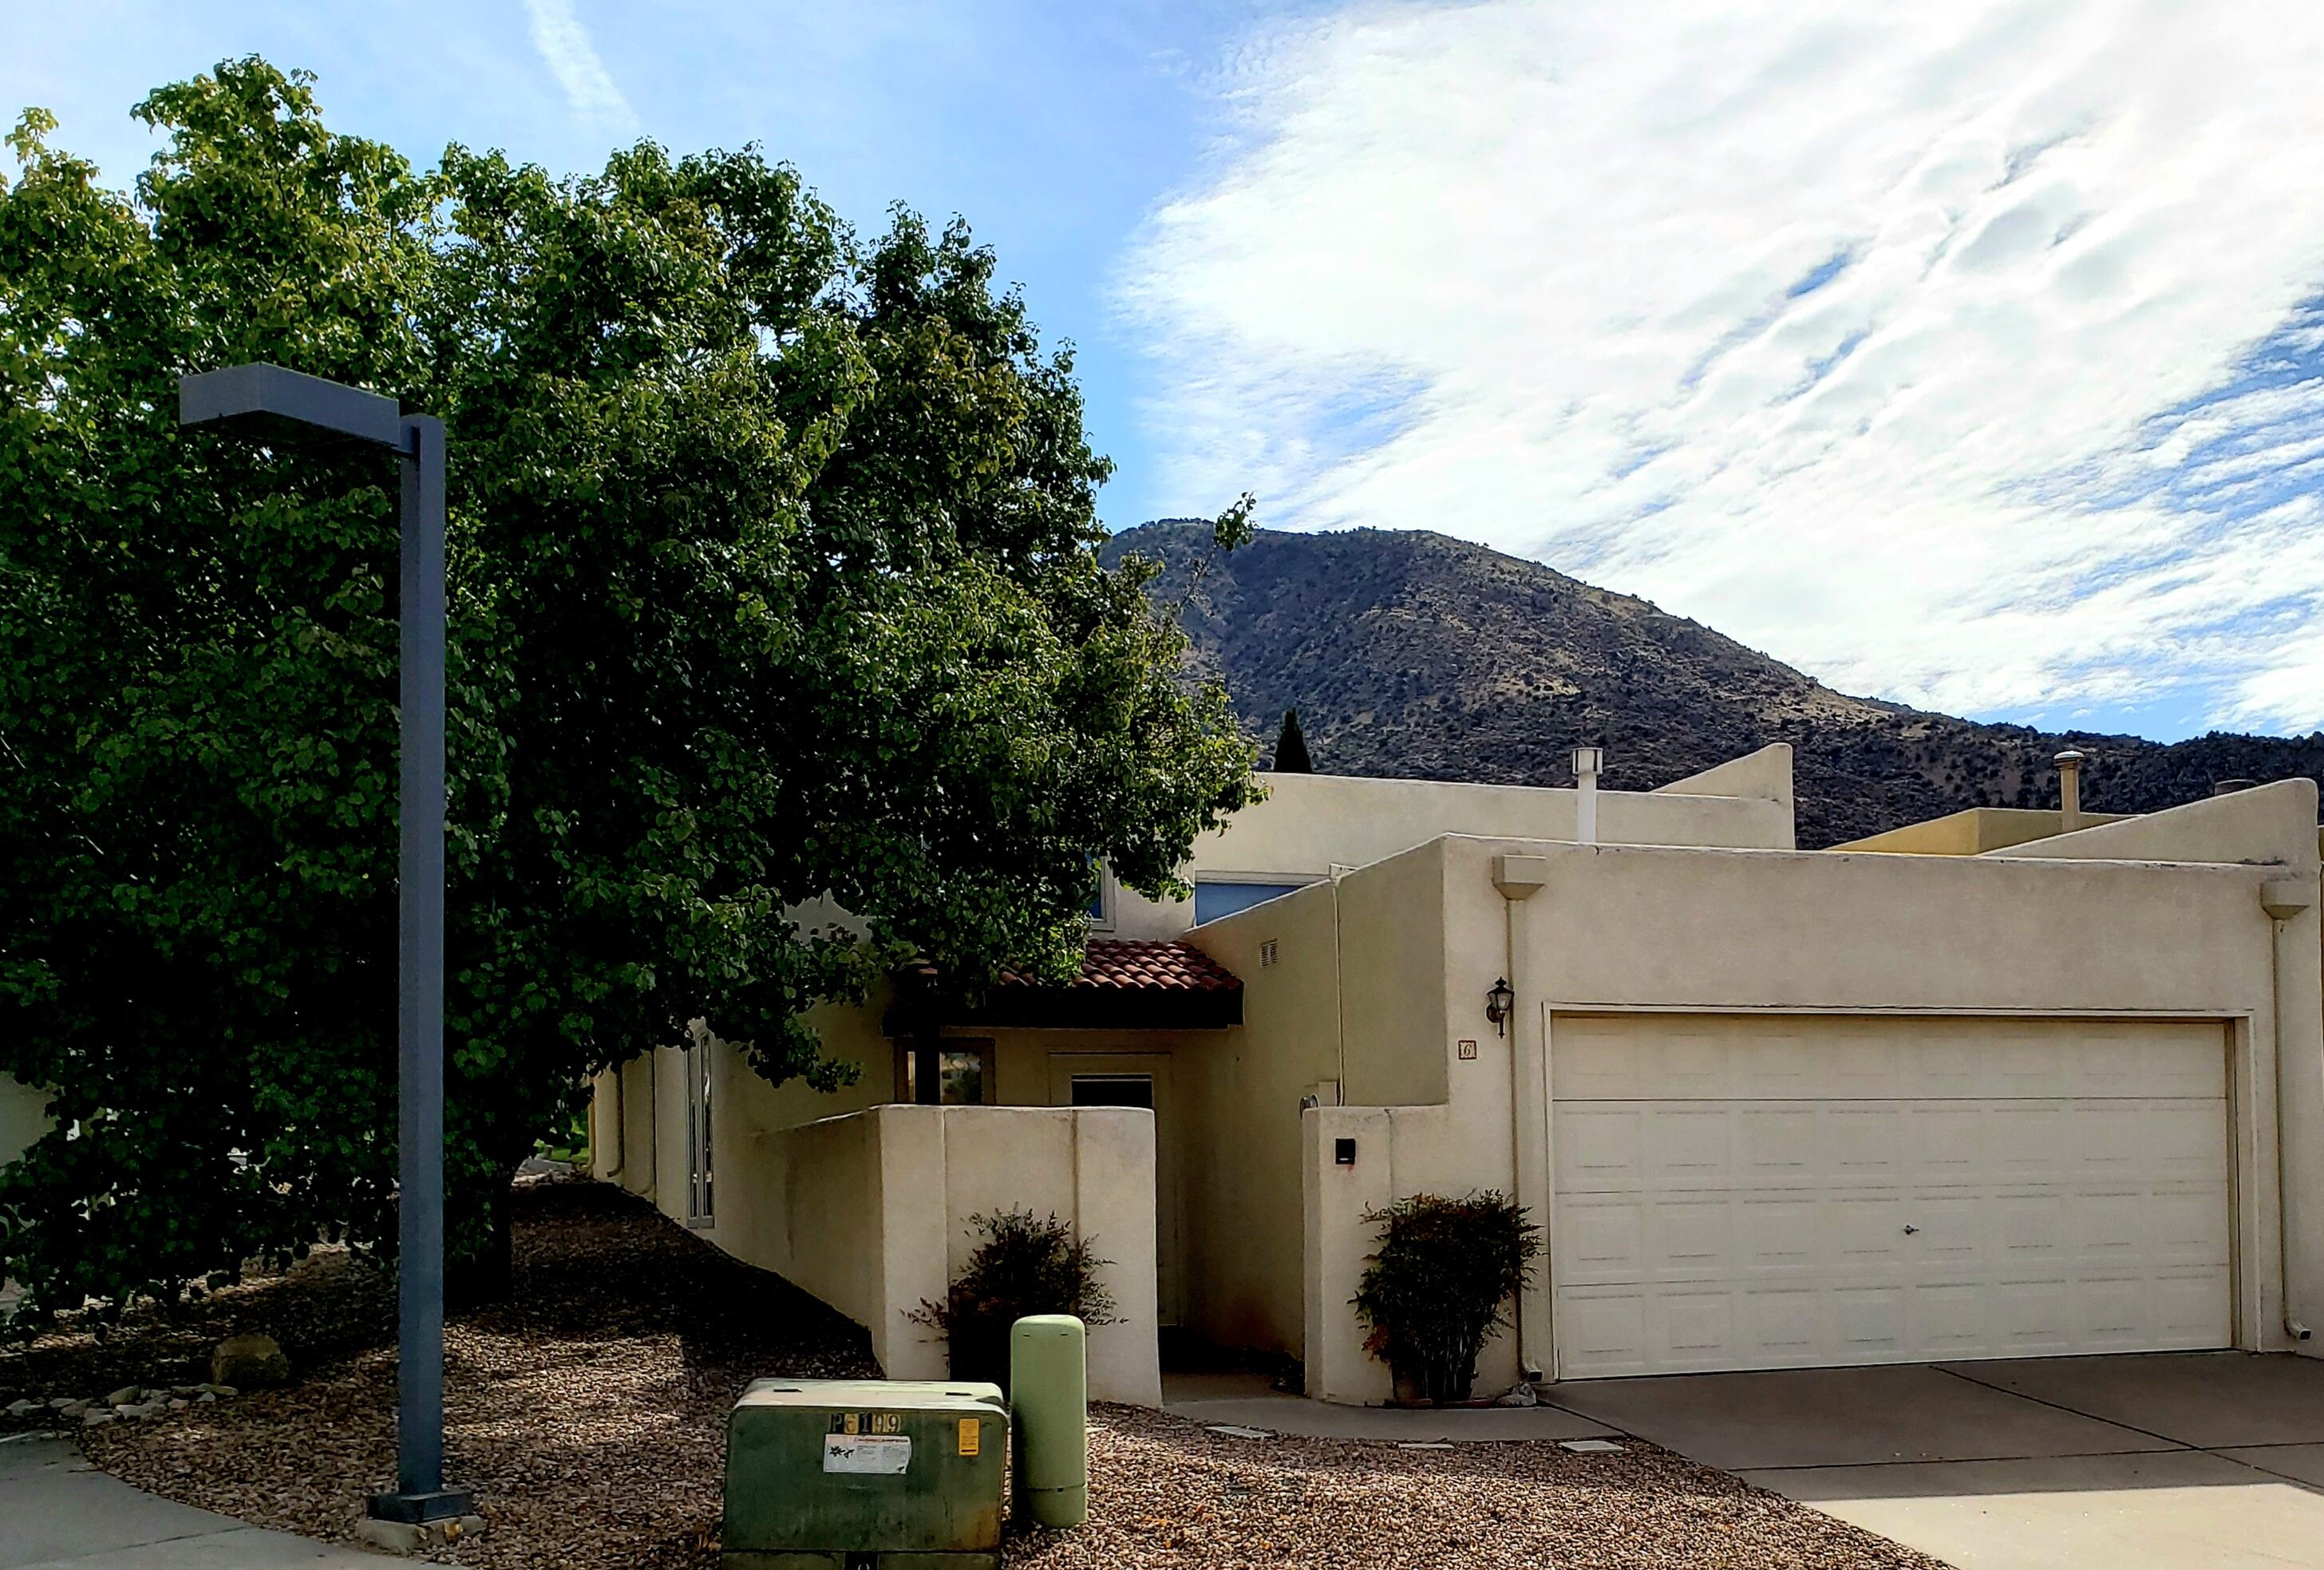 Move in ready adorable townhouse tucked into the foothills.